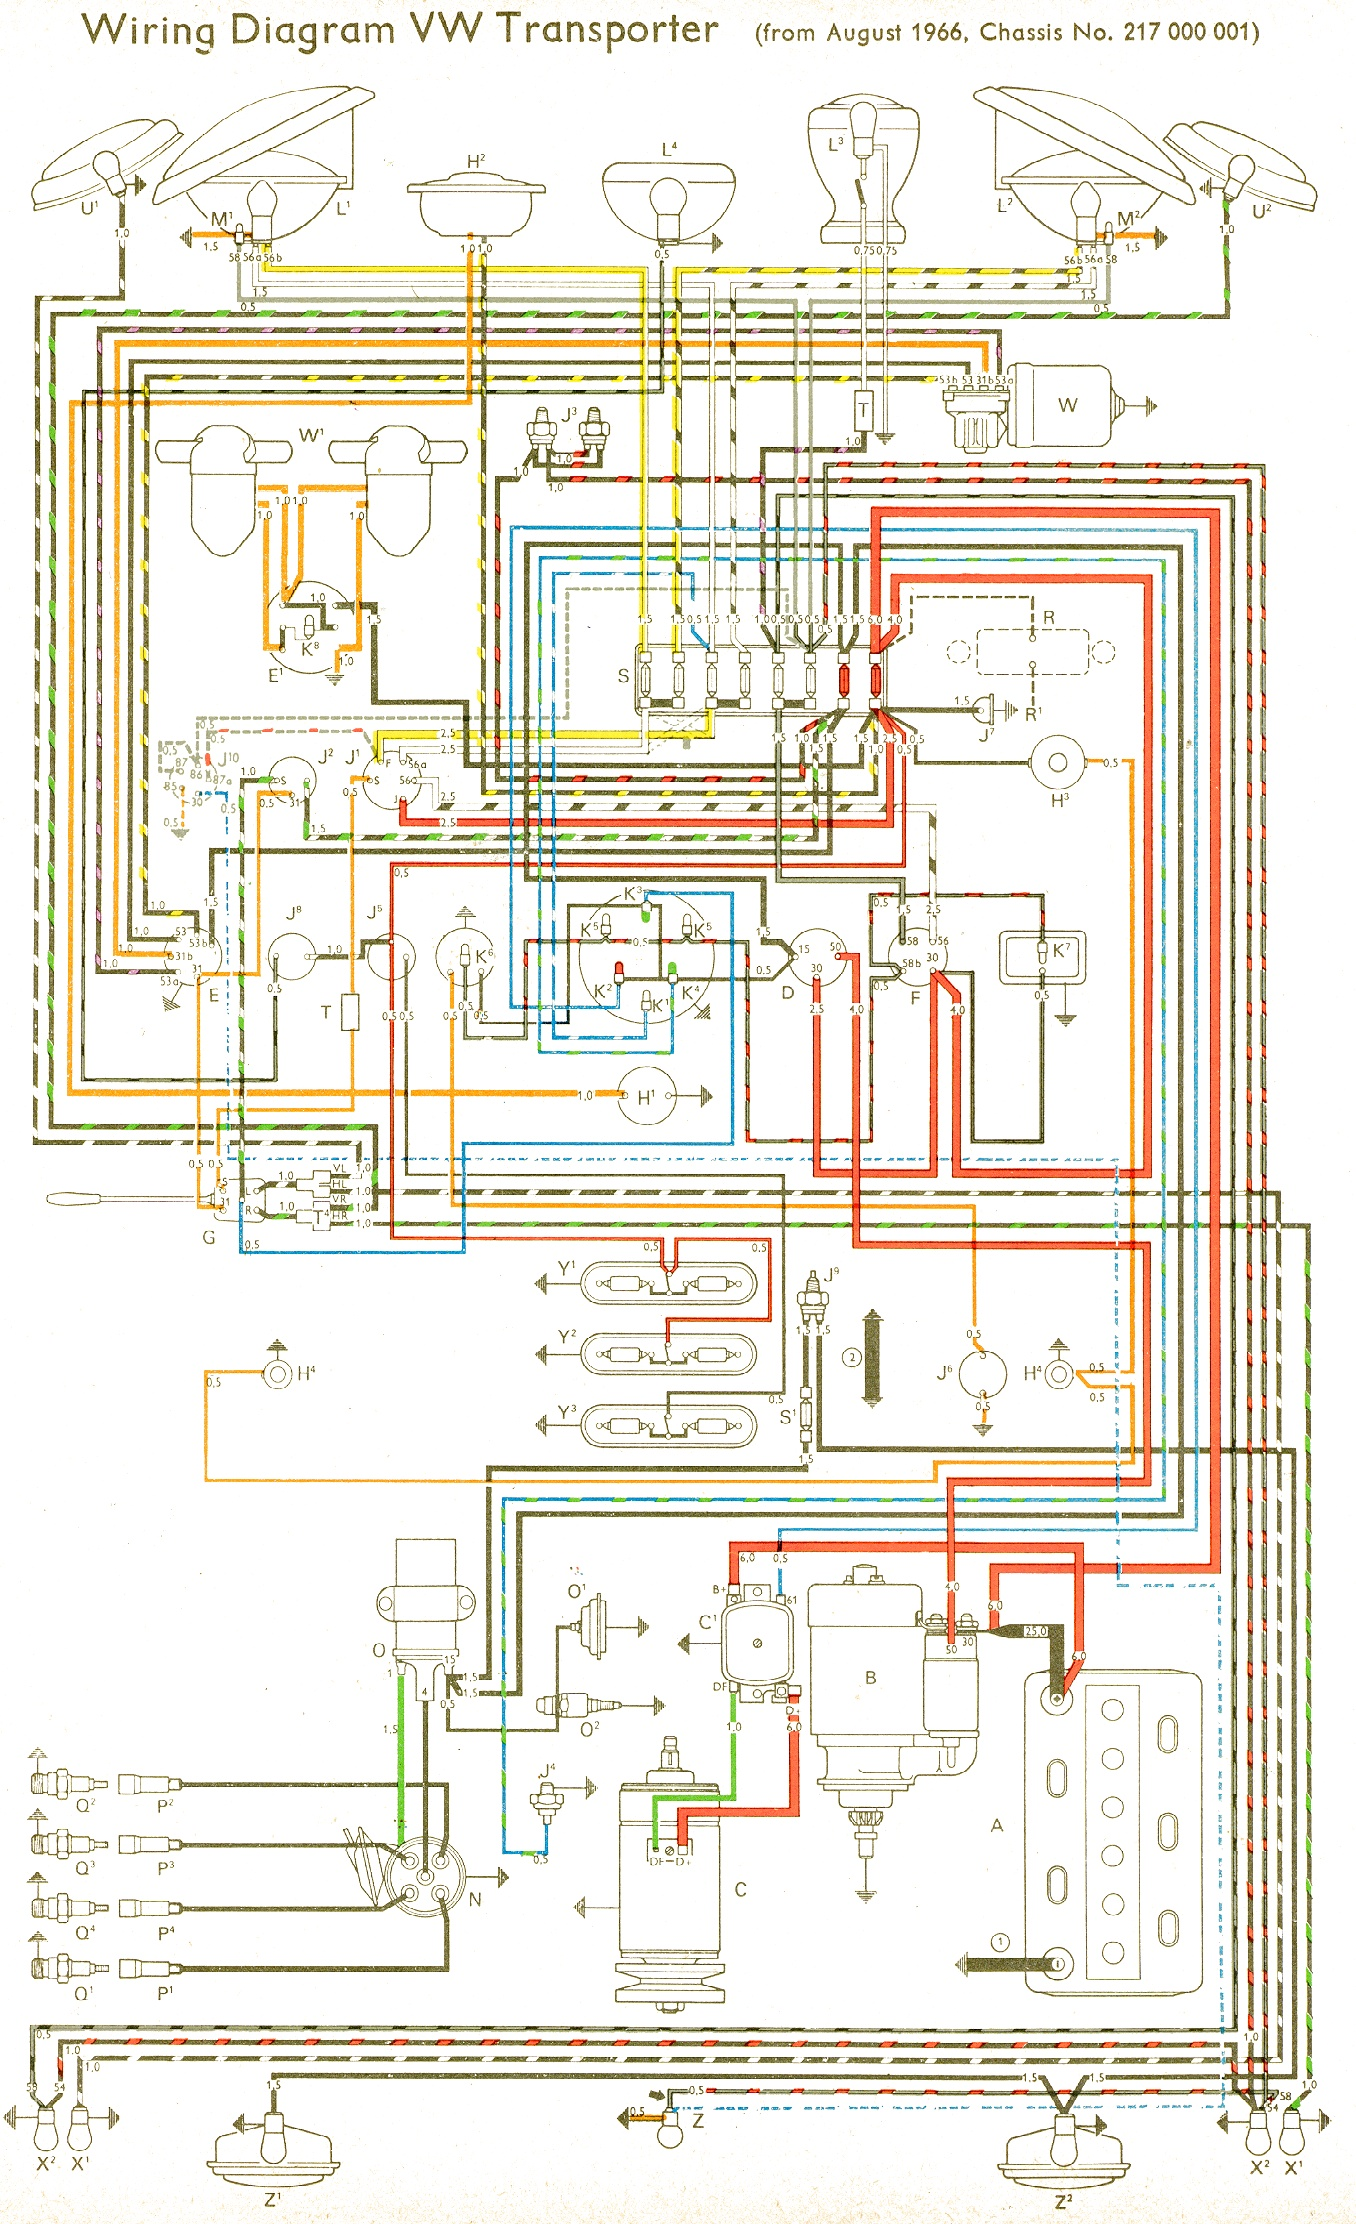 bus 66 bus wiring diagram vw wiring harness diagram \u2022 wiring diagrams j 1971 vw bus wiring diagram at gsmportal.co